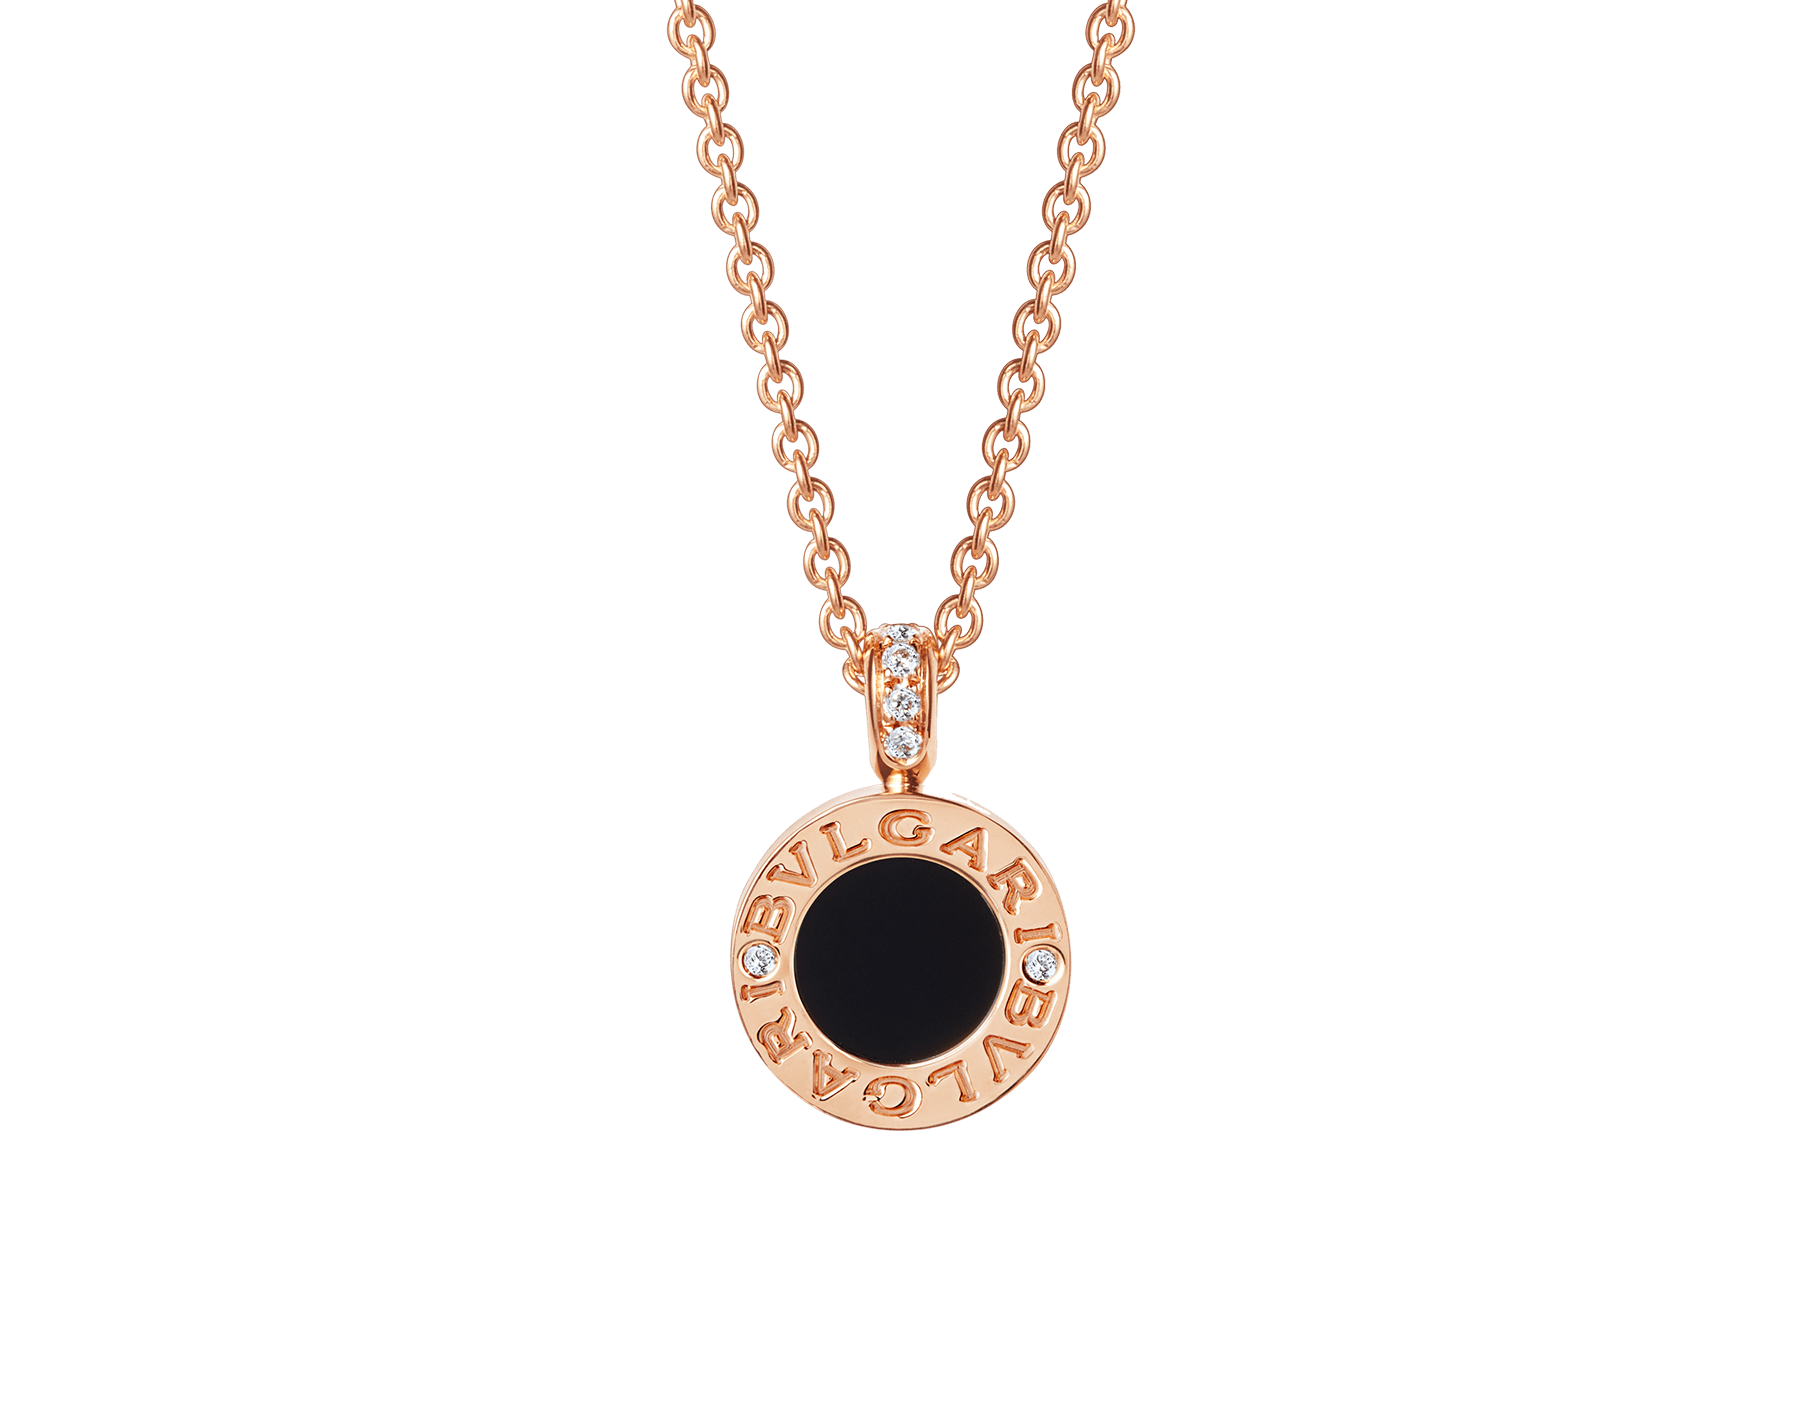 BVLGARI BVLGARI 18 kt rose gold chain and 18 kt rose gold pendant set with mother-of-pearl, onyx and pavé diamonds 347761 image 3